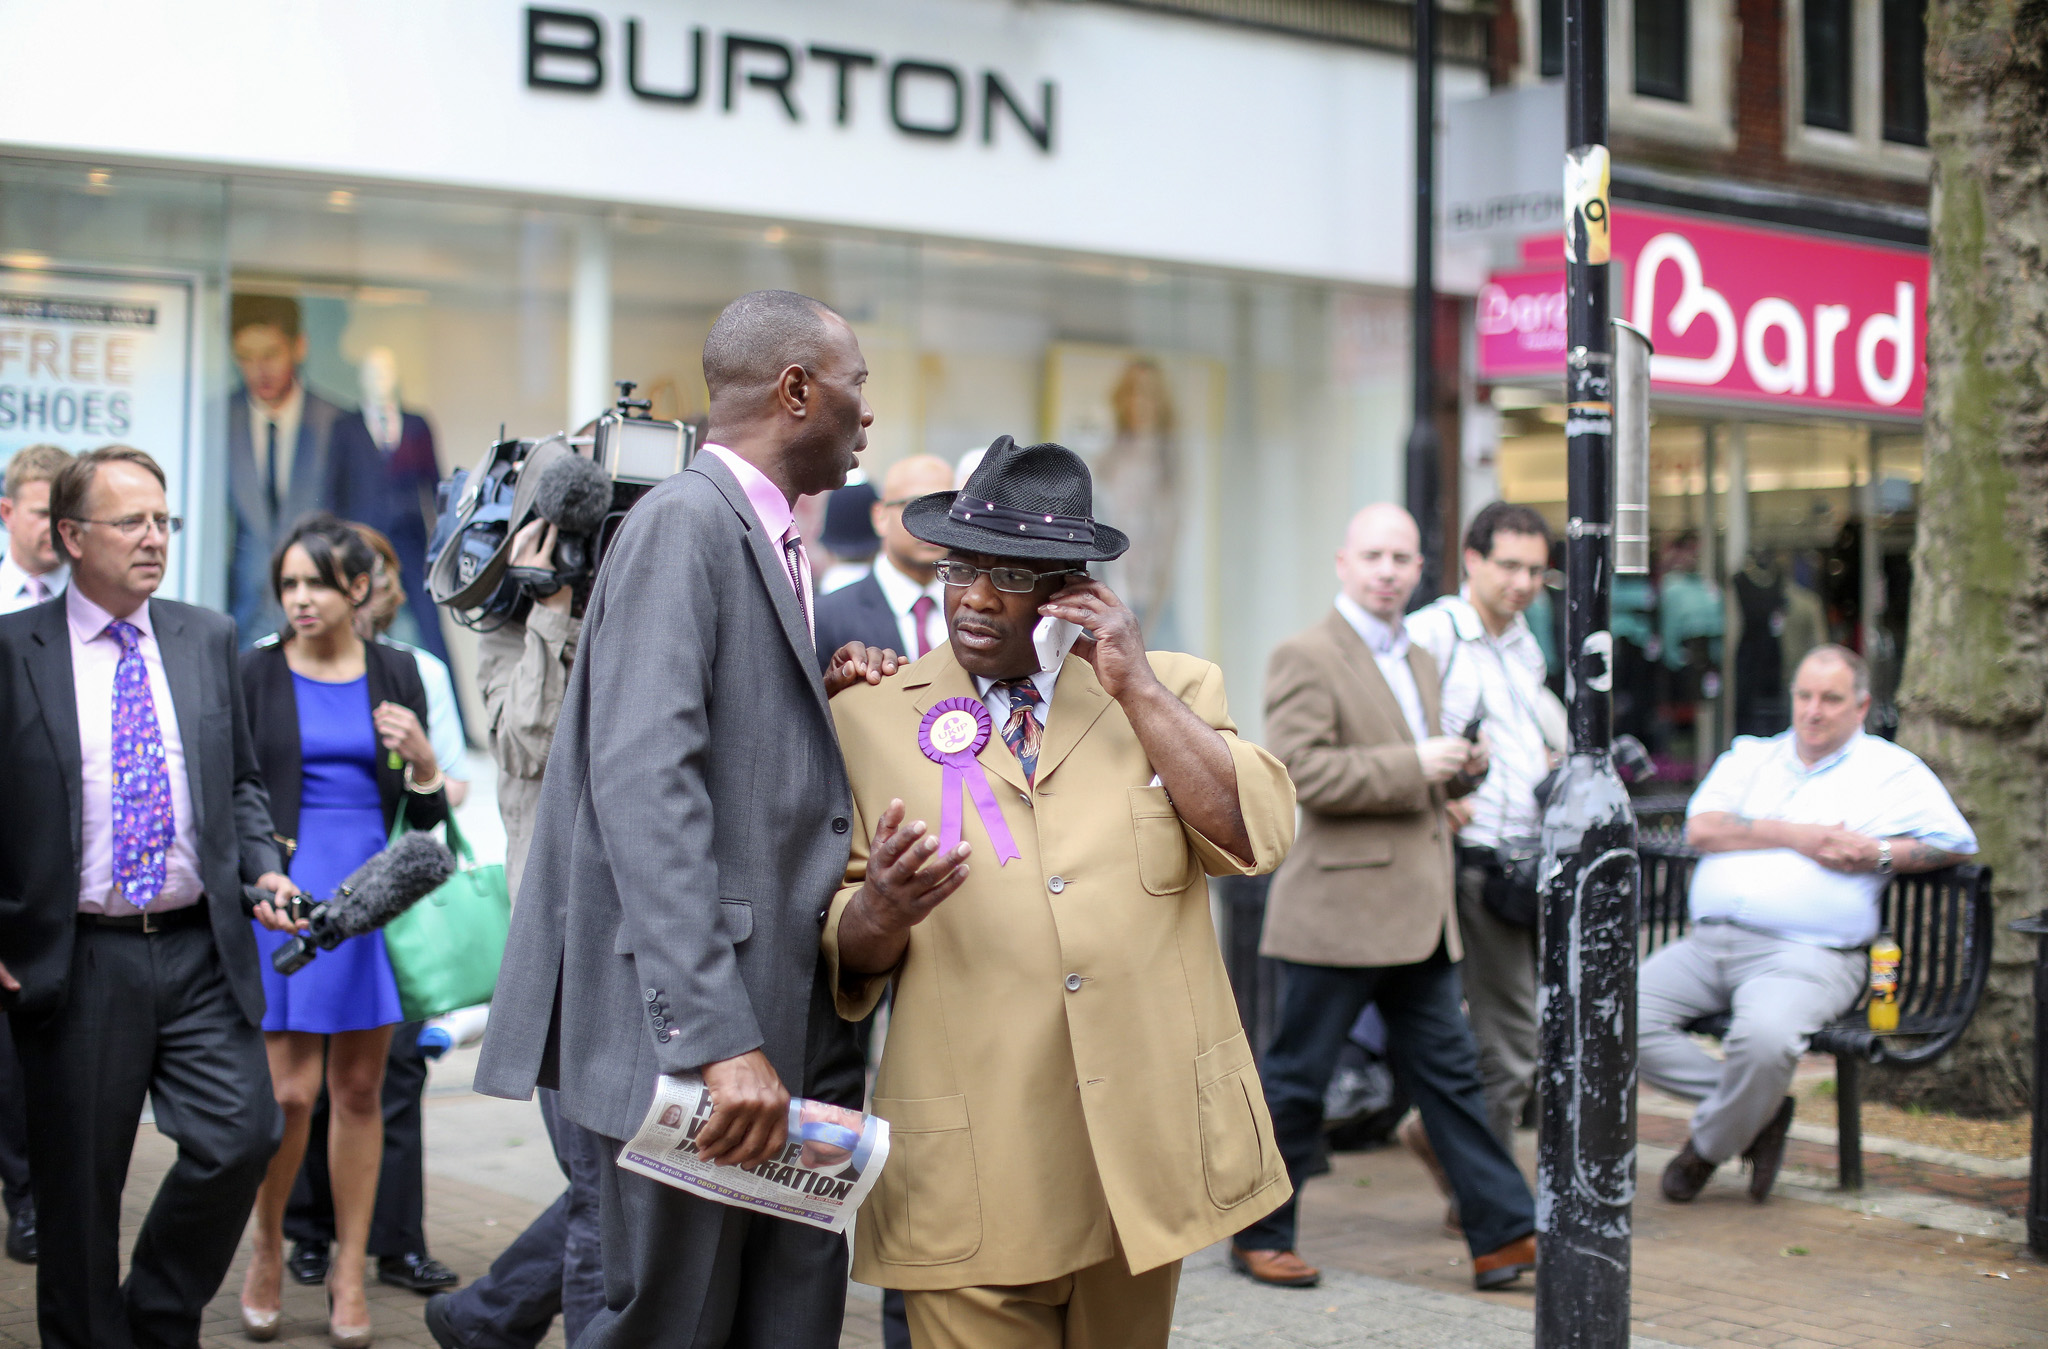 UKIP candidate for Croydon, Winston waits for Nigel Farage, Leader of UKIP outside the Whitgift Centre in Croydon. Mr Farage decide not to attend the event in the end.UKIP candidate, Winston McKenzie, waits for Nigel Farage, Leader of UKIP outside the Whitgift Centre in Croydon. Mr Farage decide not to attend the event in the end.UKIP candidate, Winston McKenzie, waits for Nigel Farage, Leader of UKIP outside the Whitgift Centre in Croydon. Mr Farage decide not to attend the event in the end. Picture shows Mr McKenzie apparently on the phone to Mr Farage.